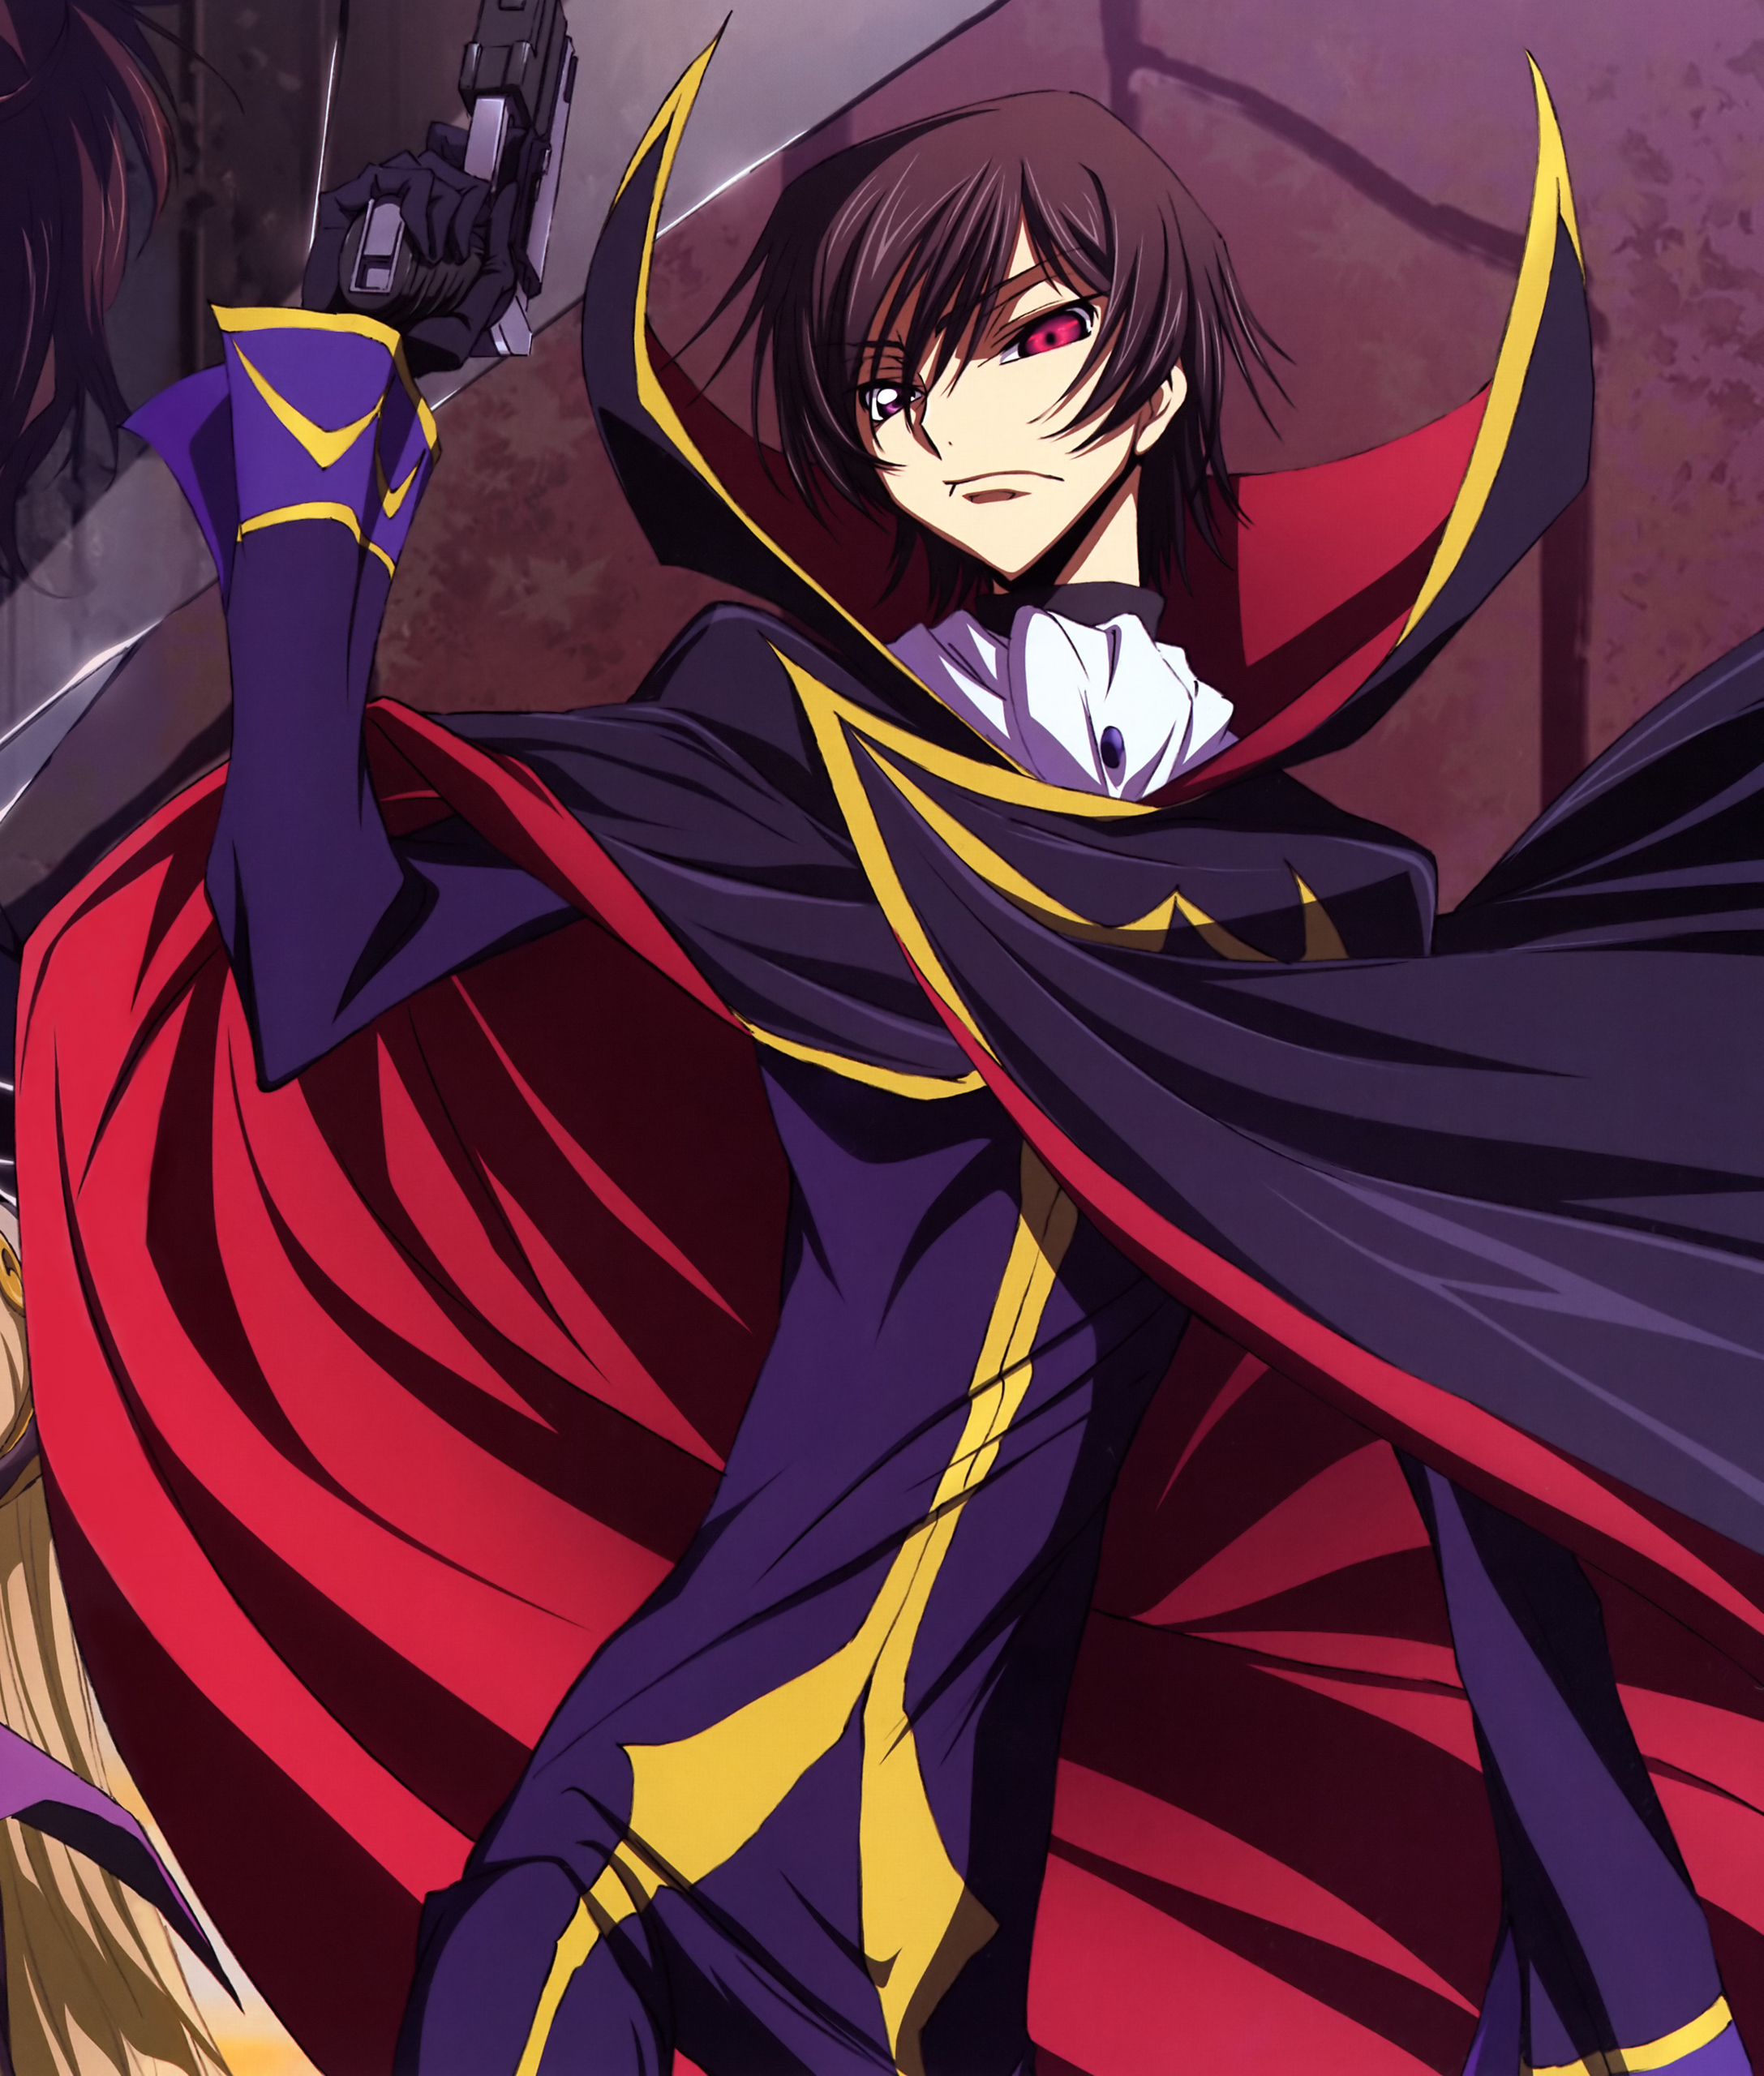 lelouch vi britannia code geass hetalianstella fan art. Black Bedroom Furniture Sets. Home Design Ideas